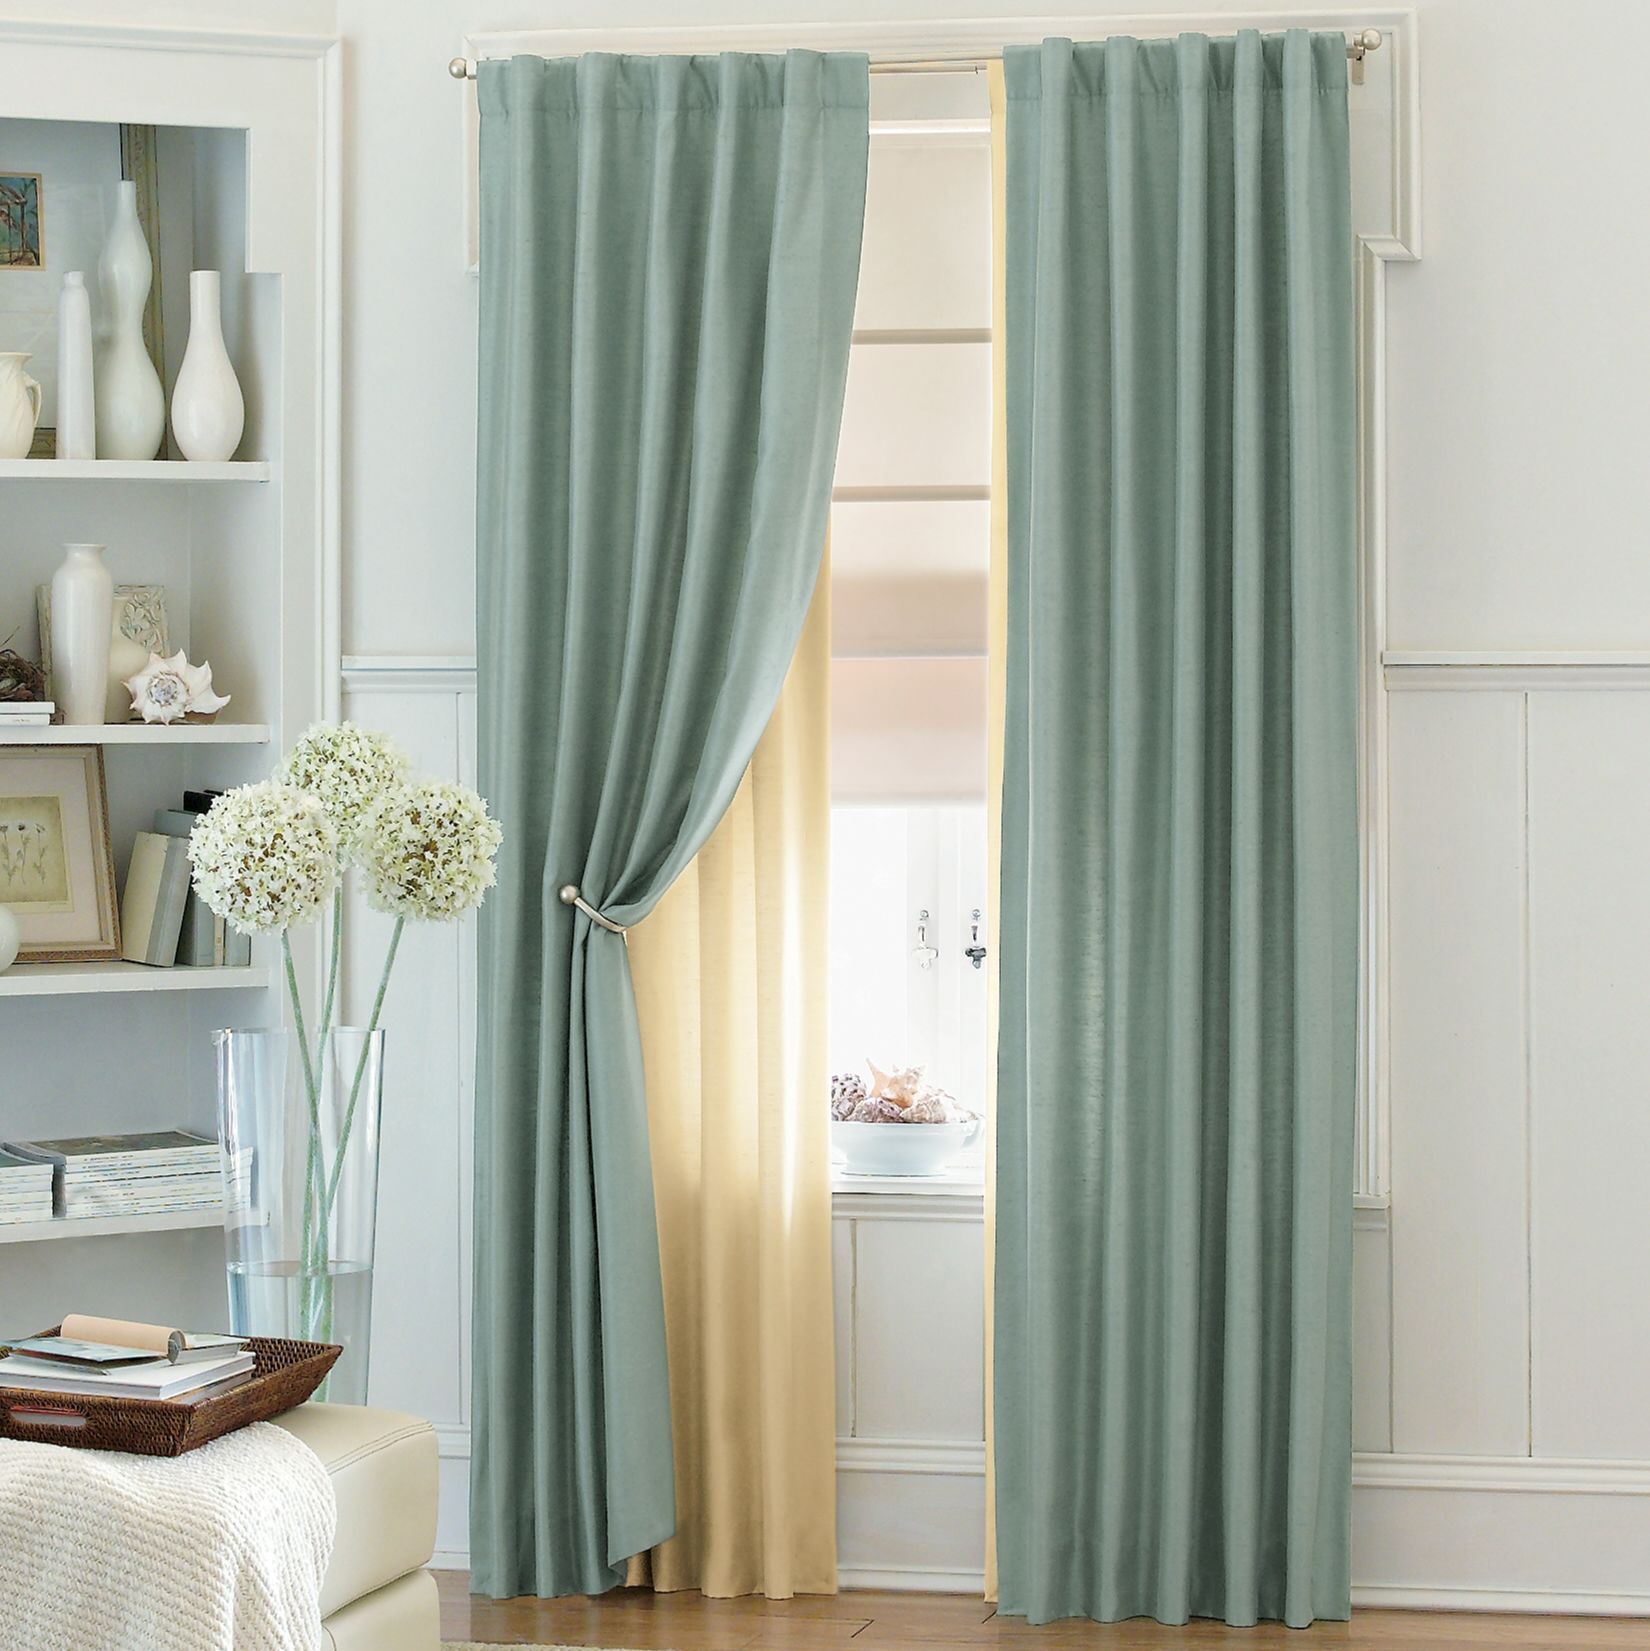 awe-inspiring grey double bedroom curtains with single white